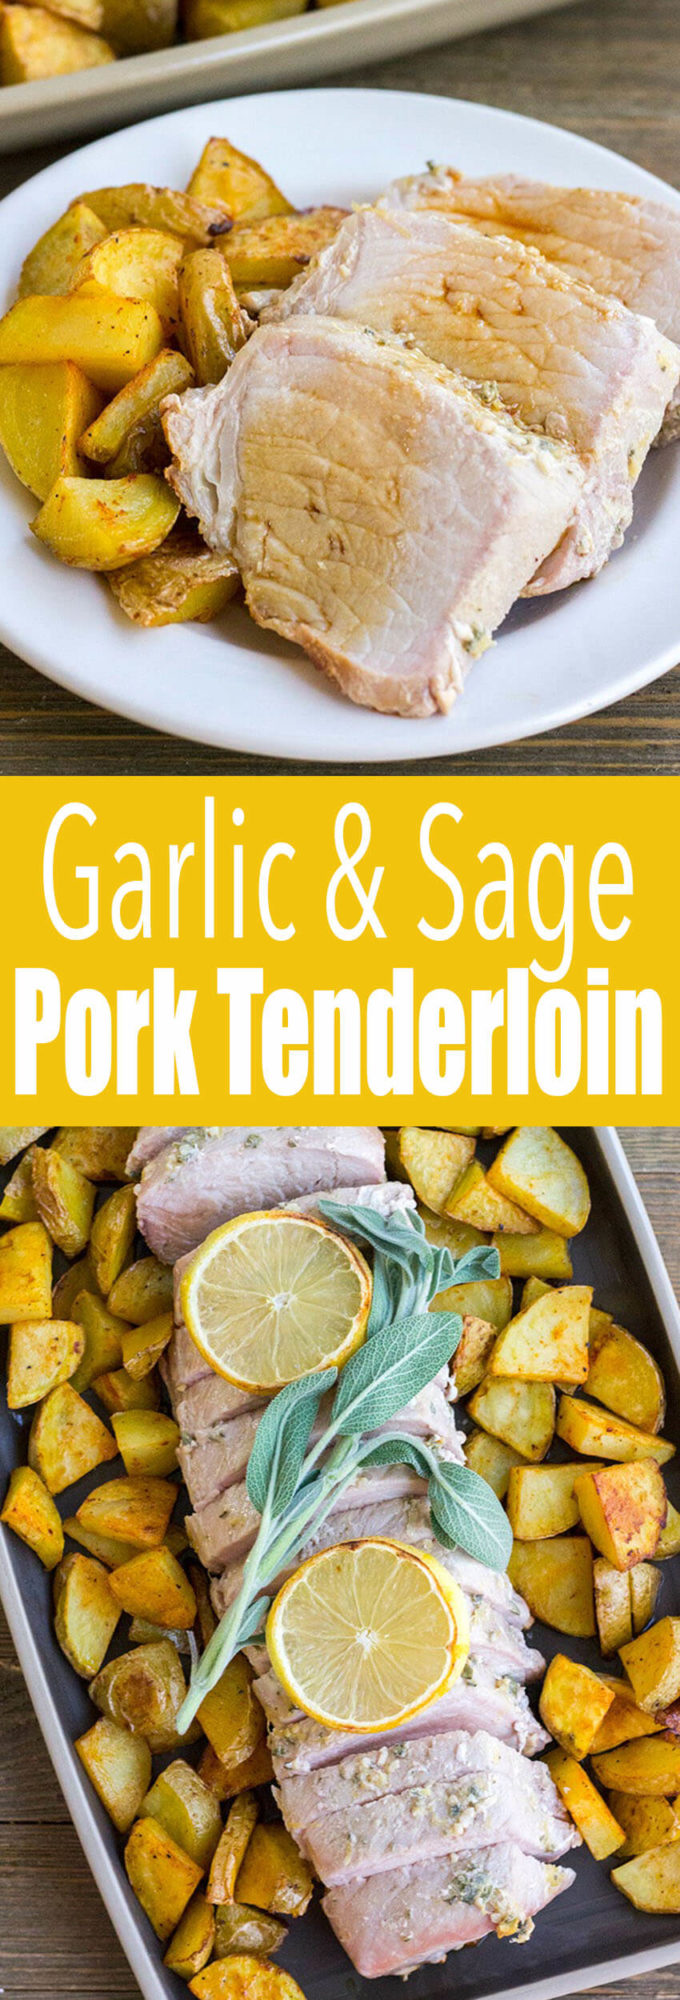 Garlic and Sage Rubbed Pork Tenderloin: This Pork Tenderloin recipe is an easy 30-minute dinner that's great for busy weeknights, but it's special enough for an intimate holiday meal too!